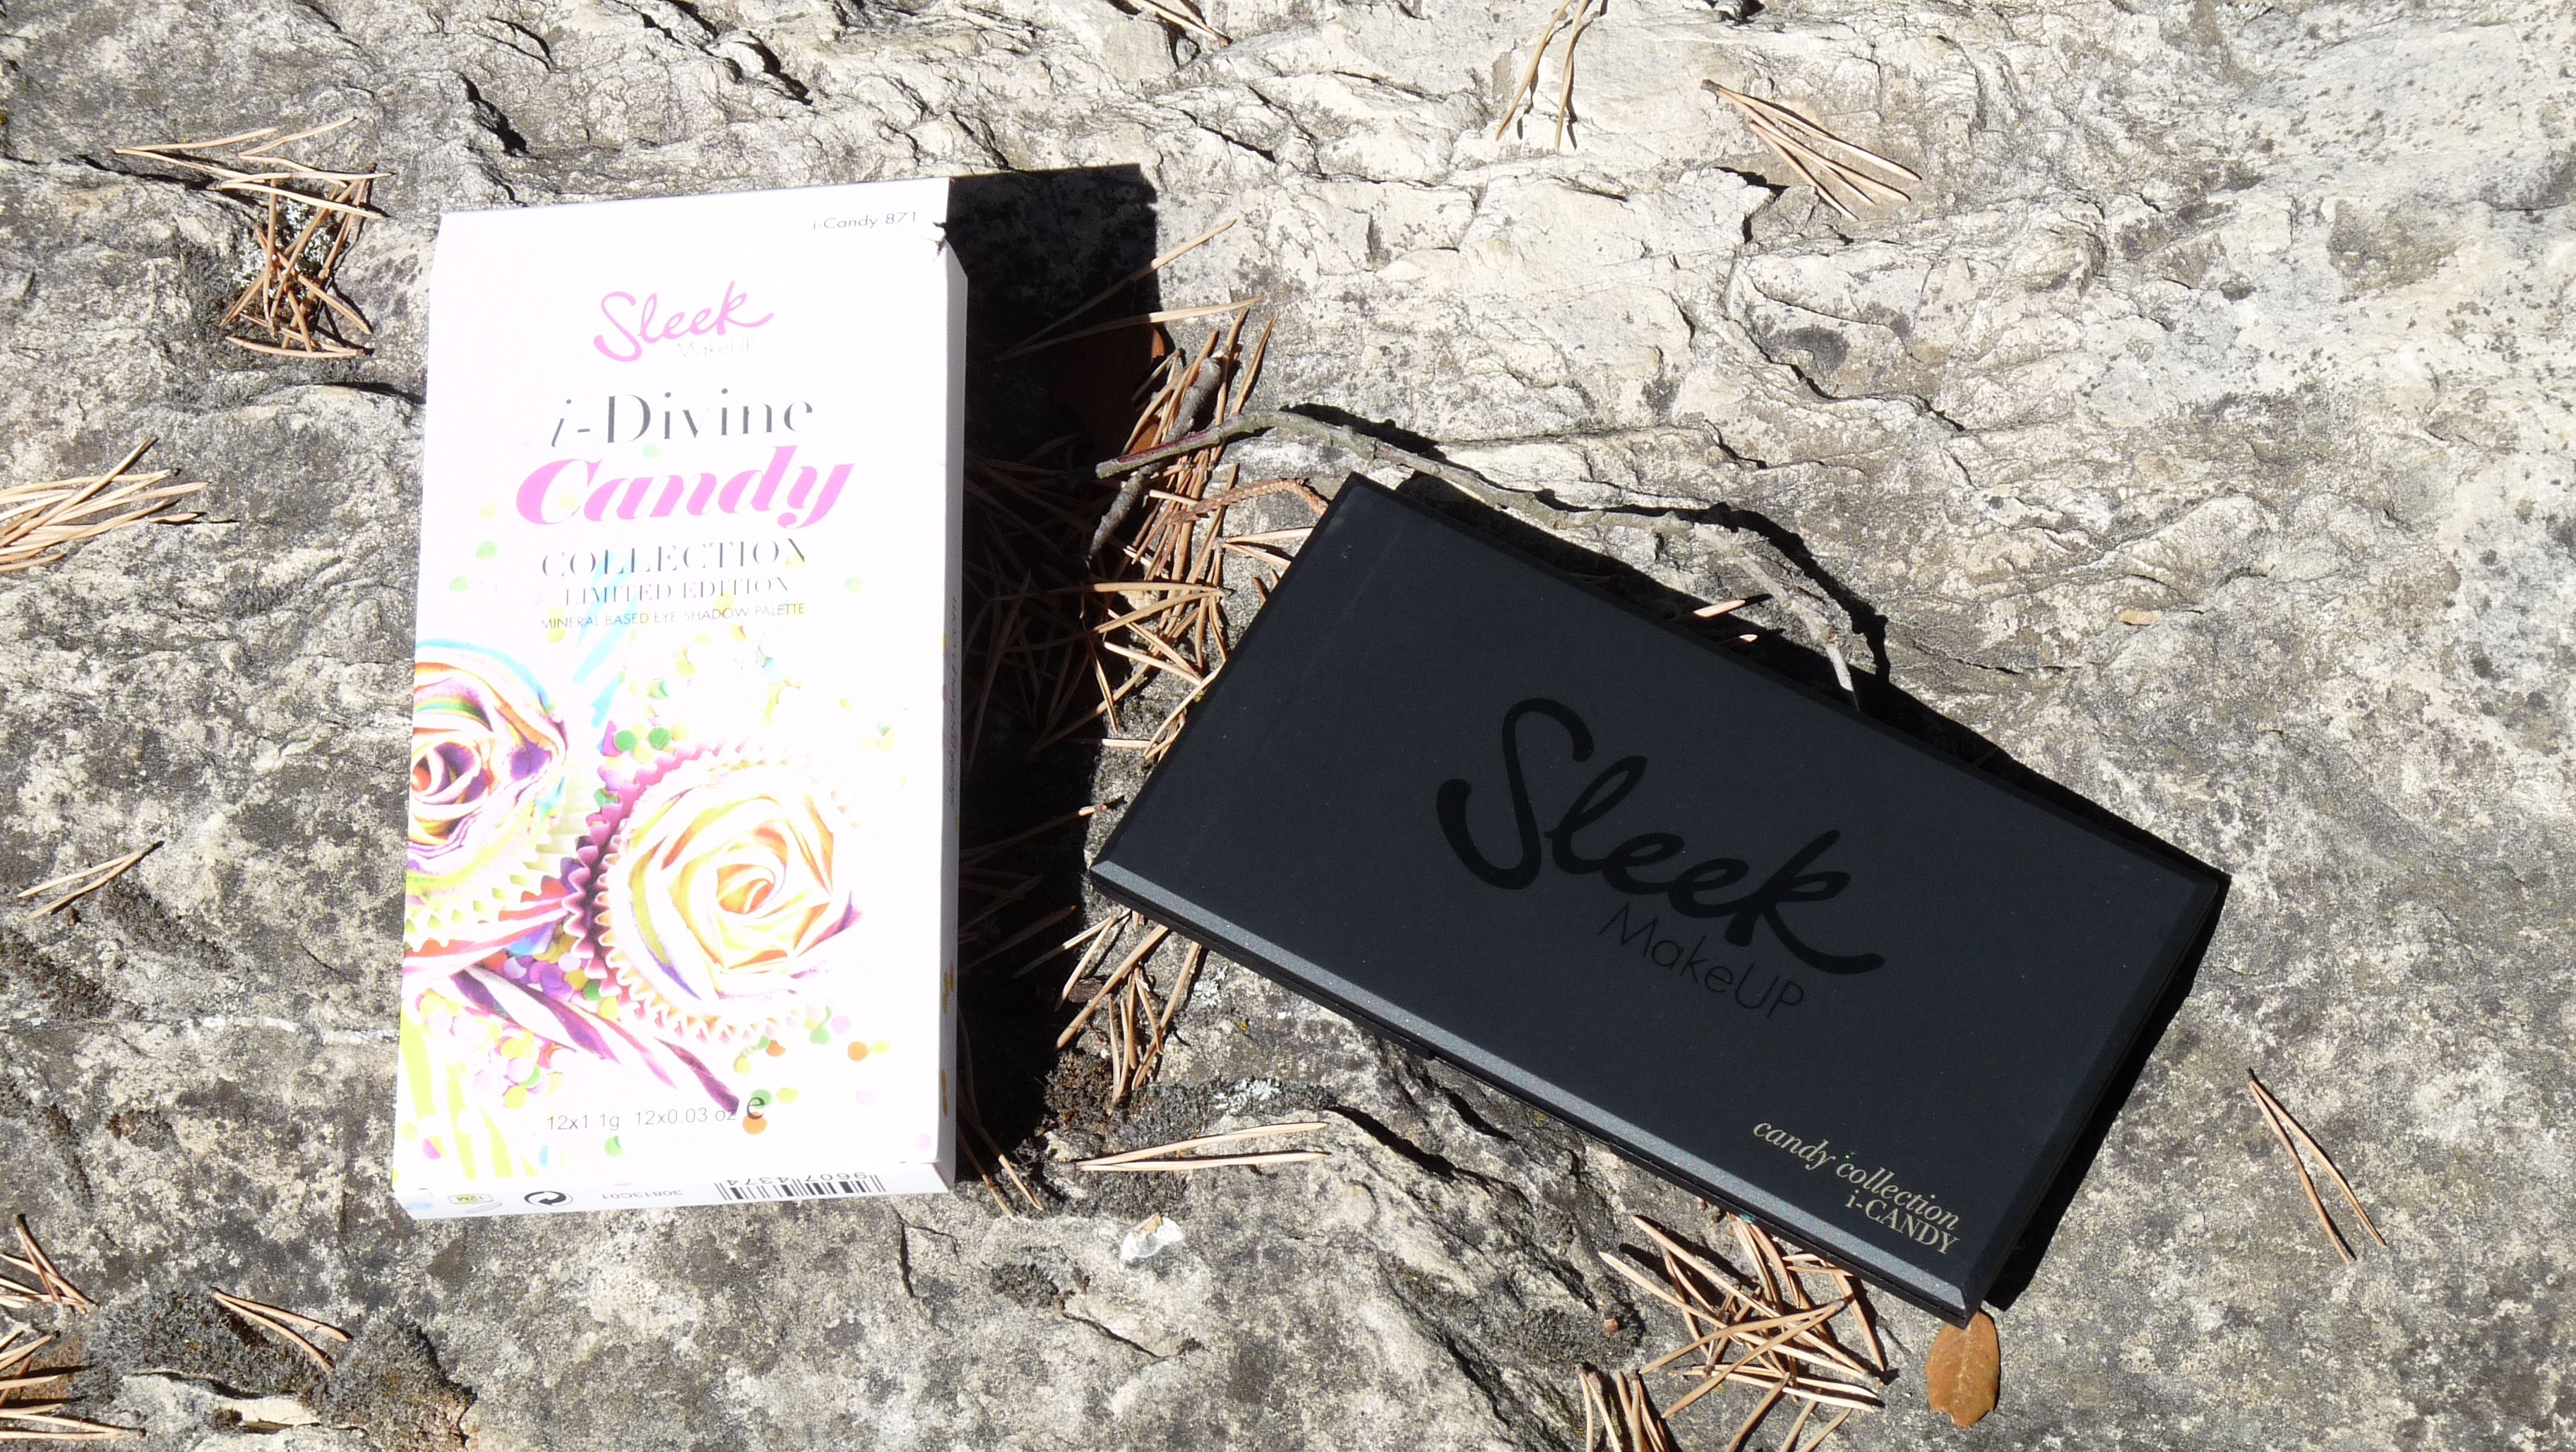 maquillage sleek palette Candy i-divine